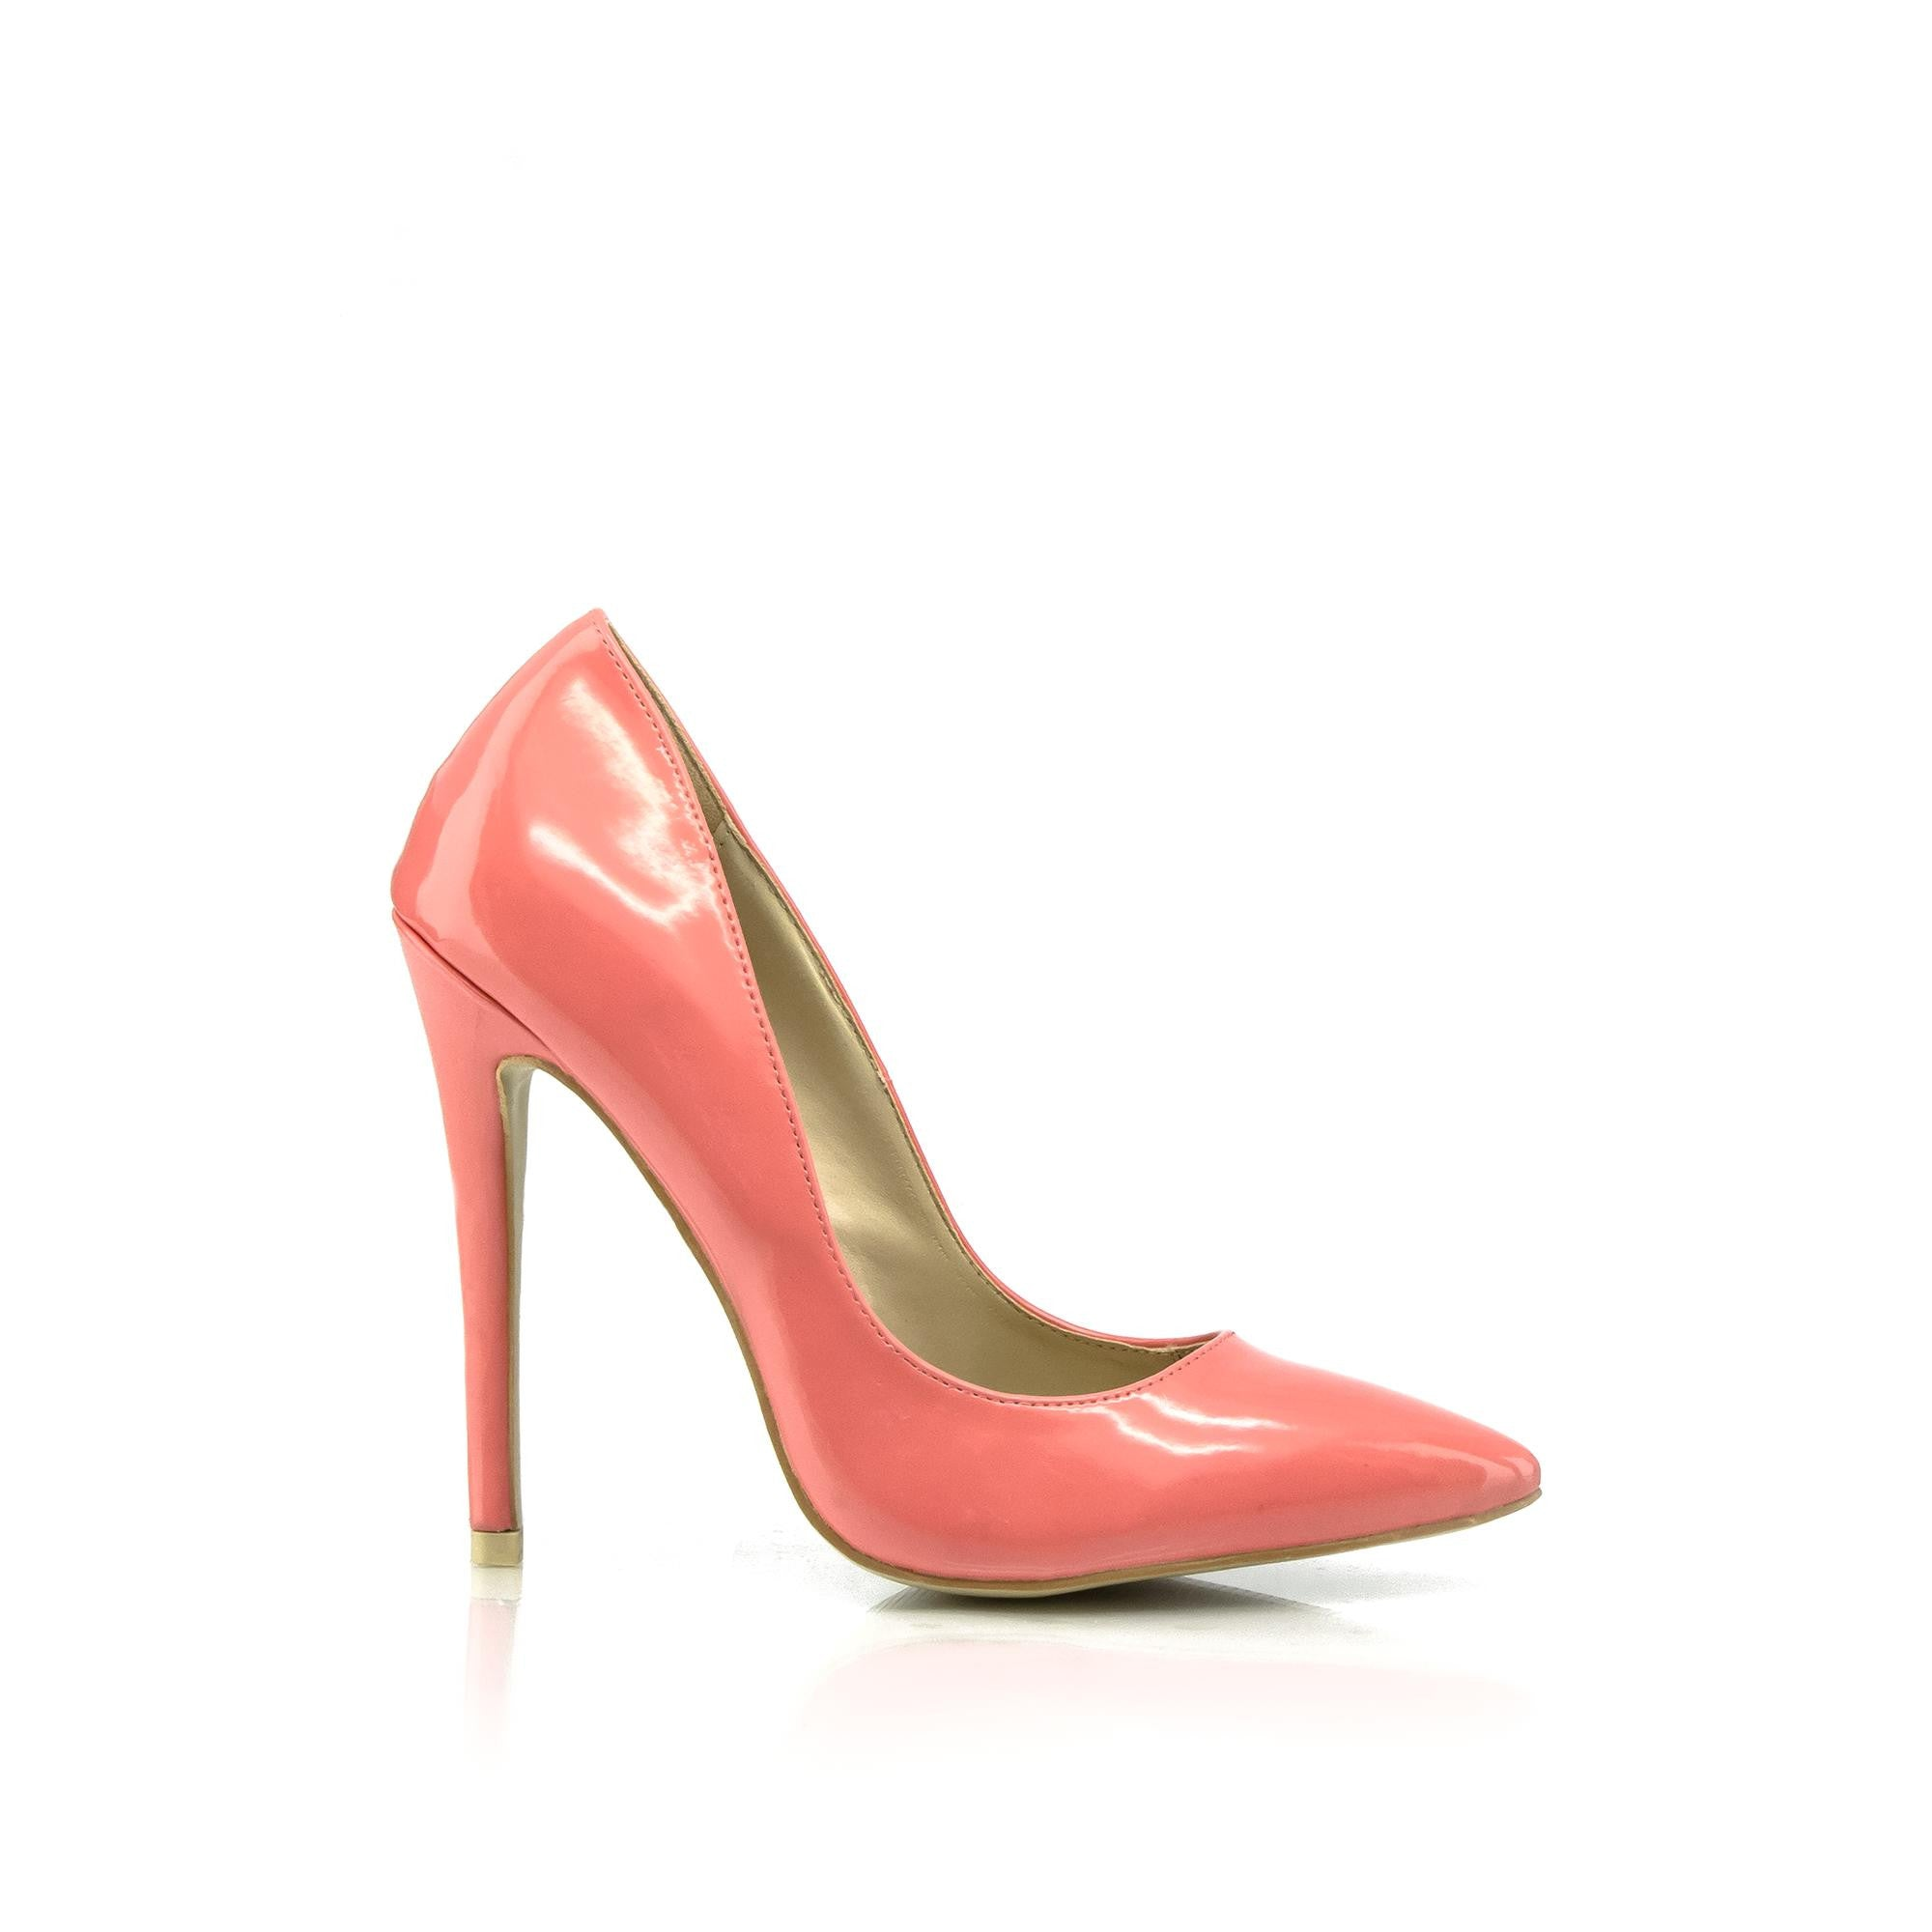 SOLE-GIRL Pointed Toe Heels